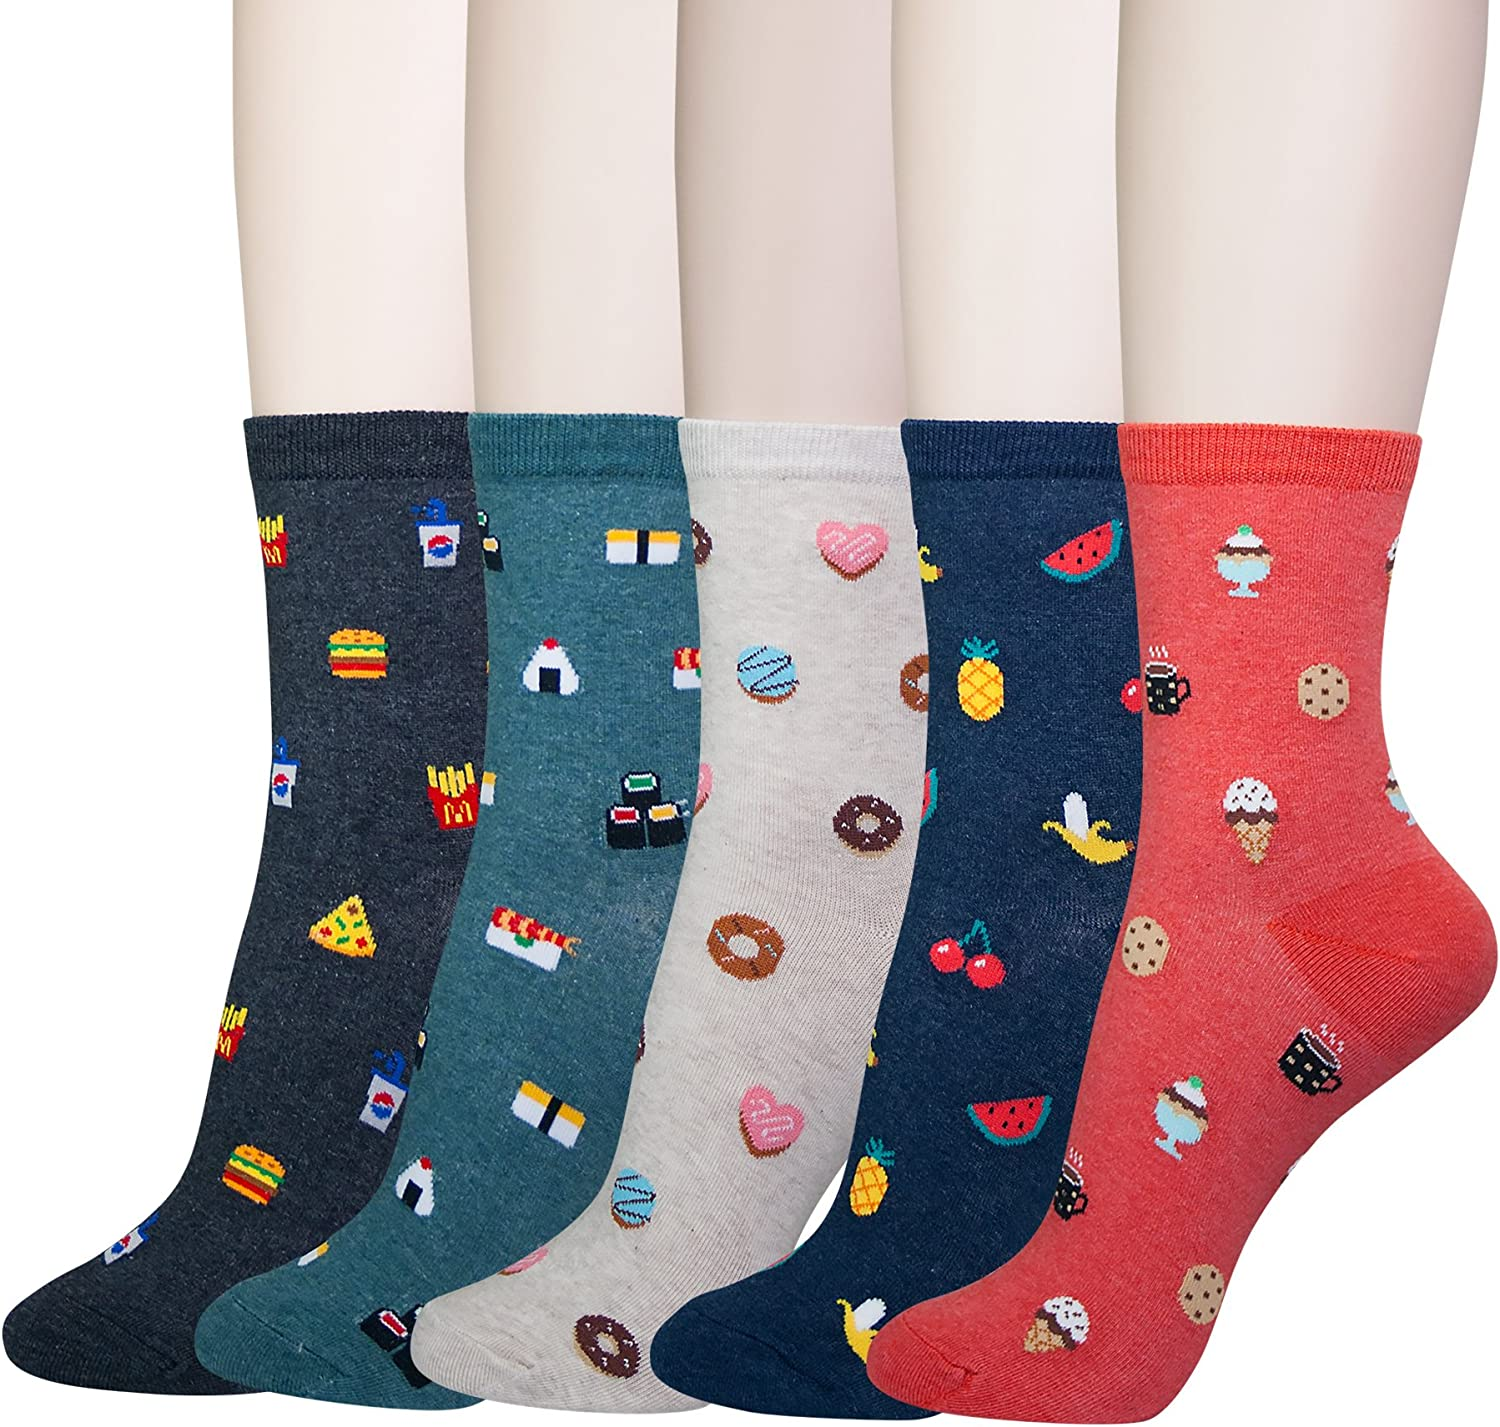 YourFeet Women's 5 Pairs Cotton Fun Fruits Food Designed Novelty Crew Socks Gifts Size 6-9